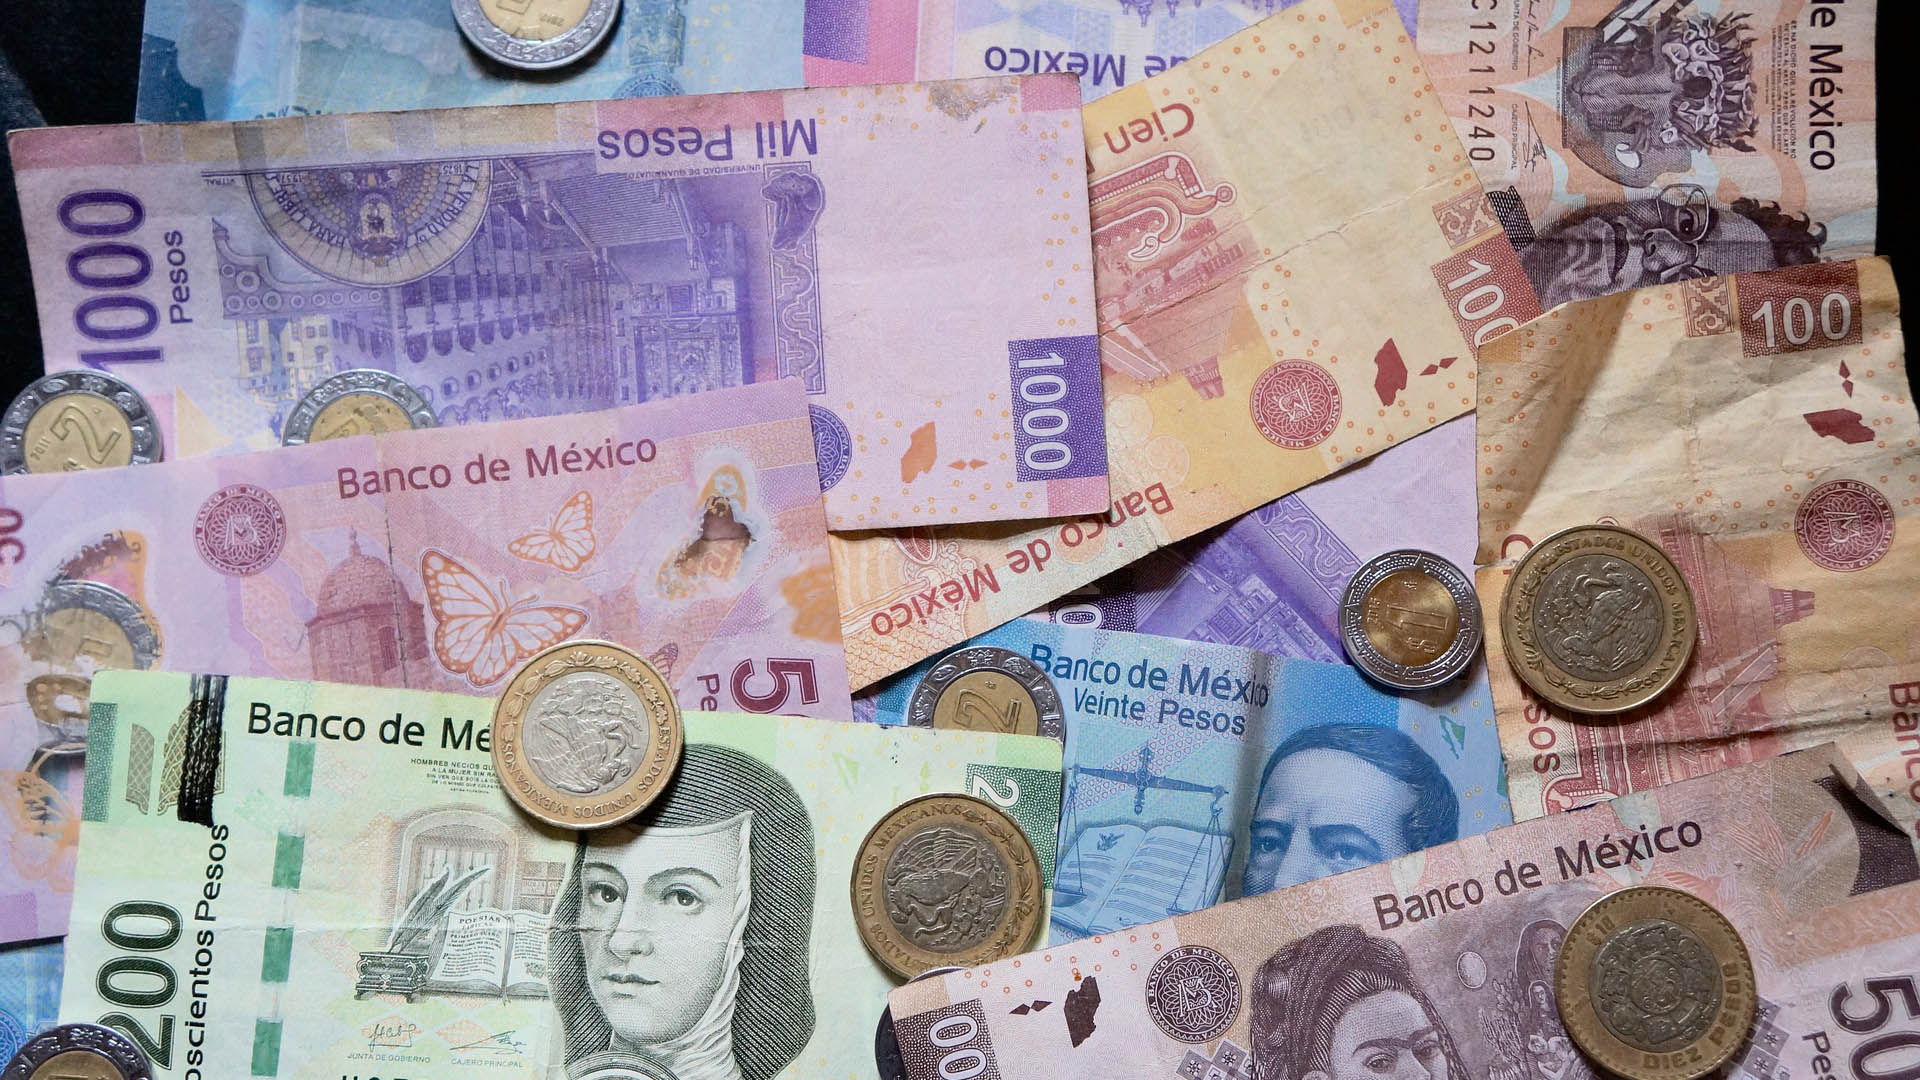 Mexican pesos in various denominations.